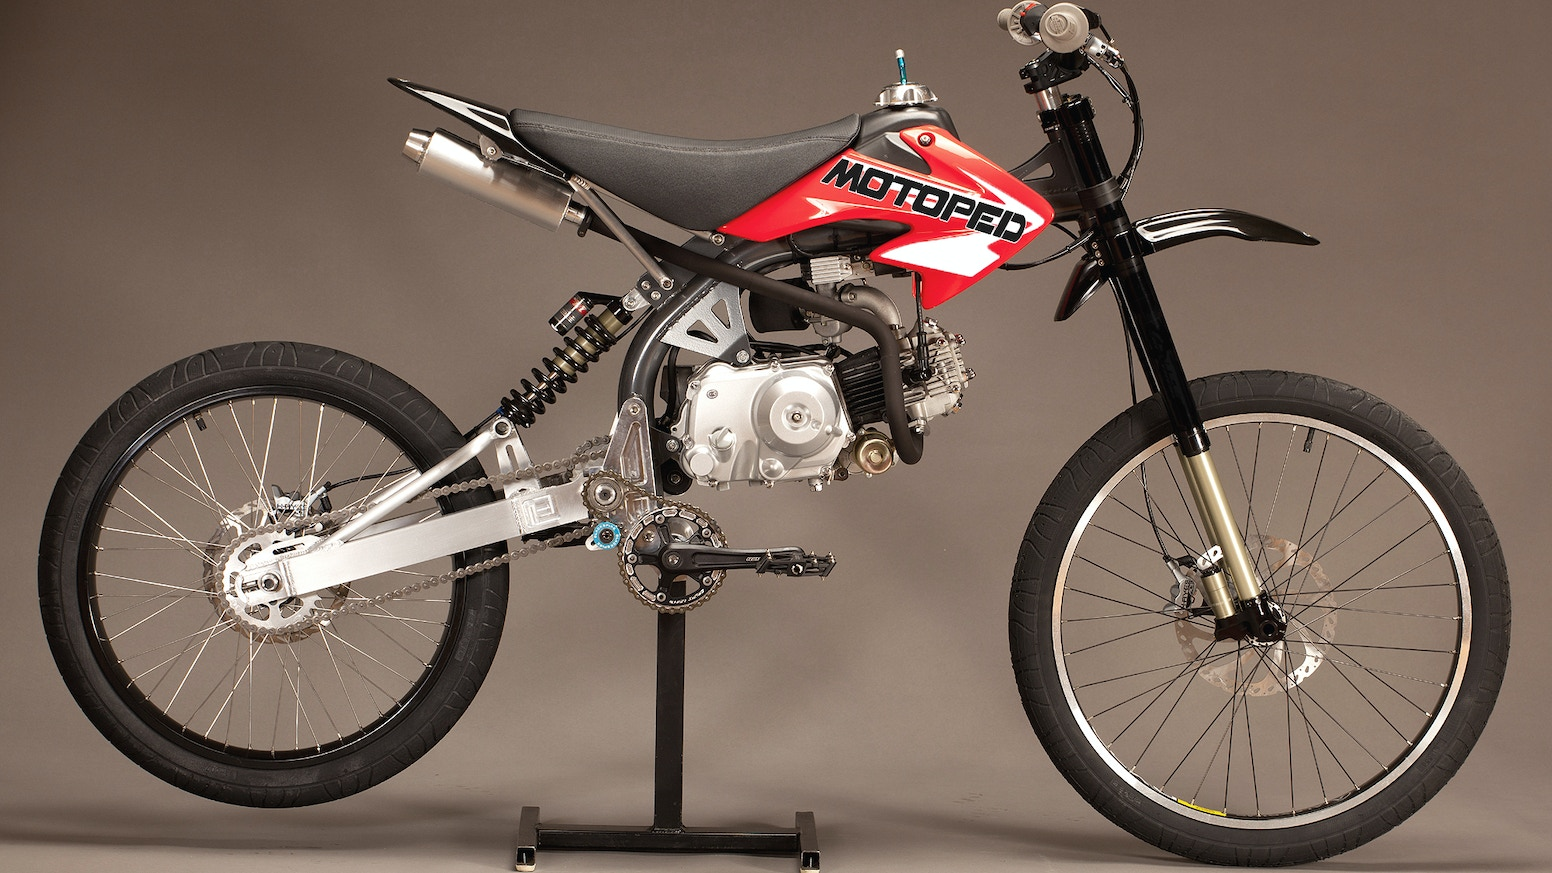 Motopeds by moto fusion kickstarter motoped a diy motorized bike kit that you assemble yourself using a xr50pitbike engine and standard mountain bike components solutioingenieria Images